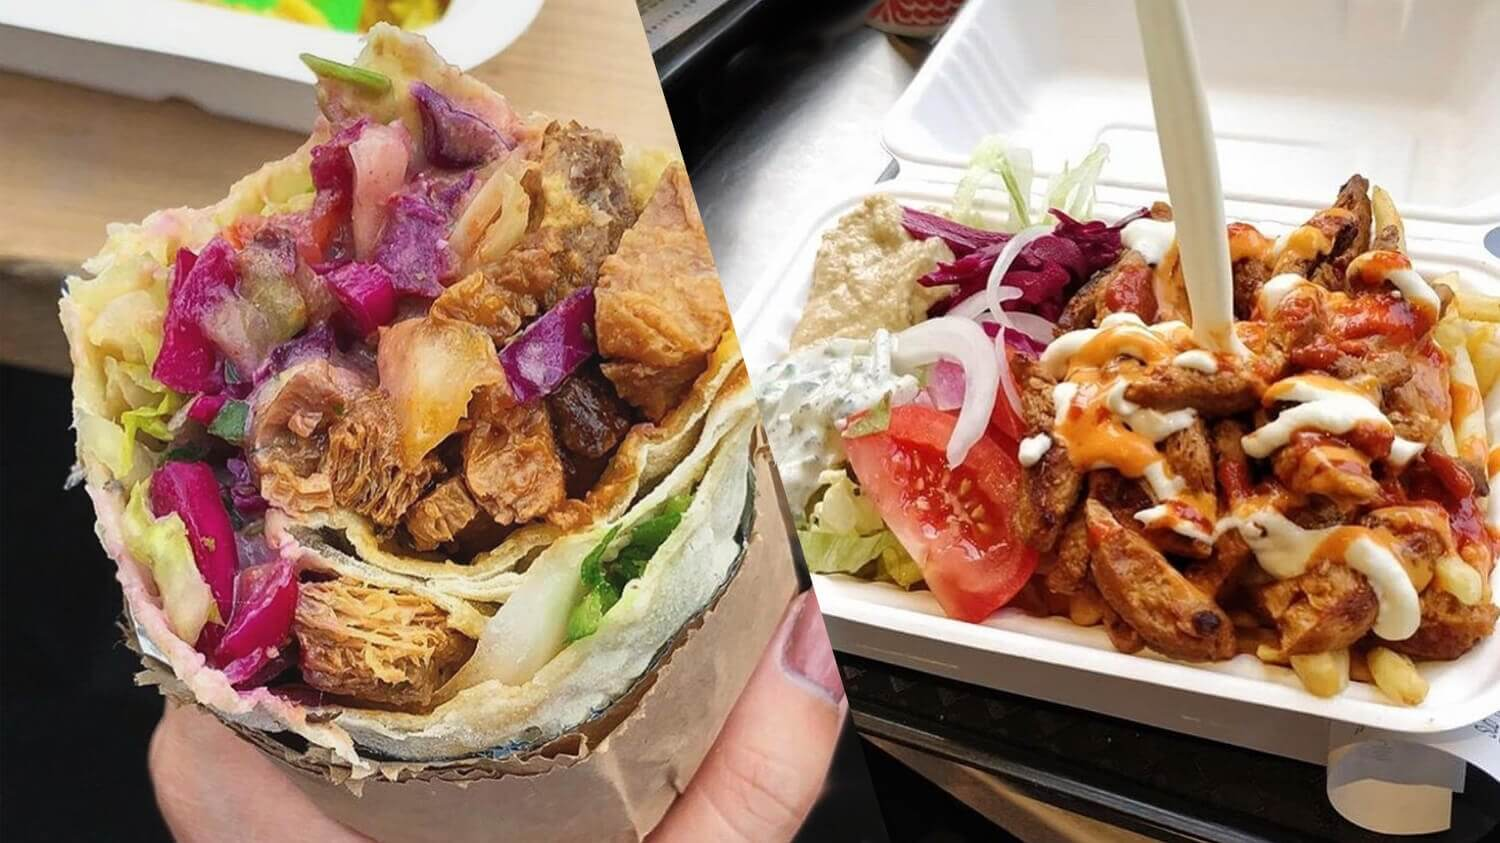 Vegan Döner Kebab Chain What the Pitta! to Open 4th UK Location